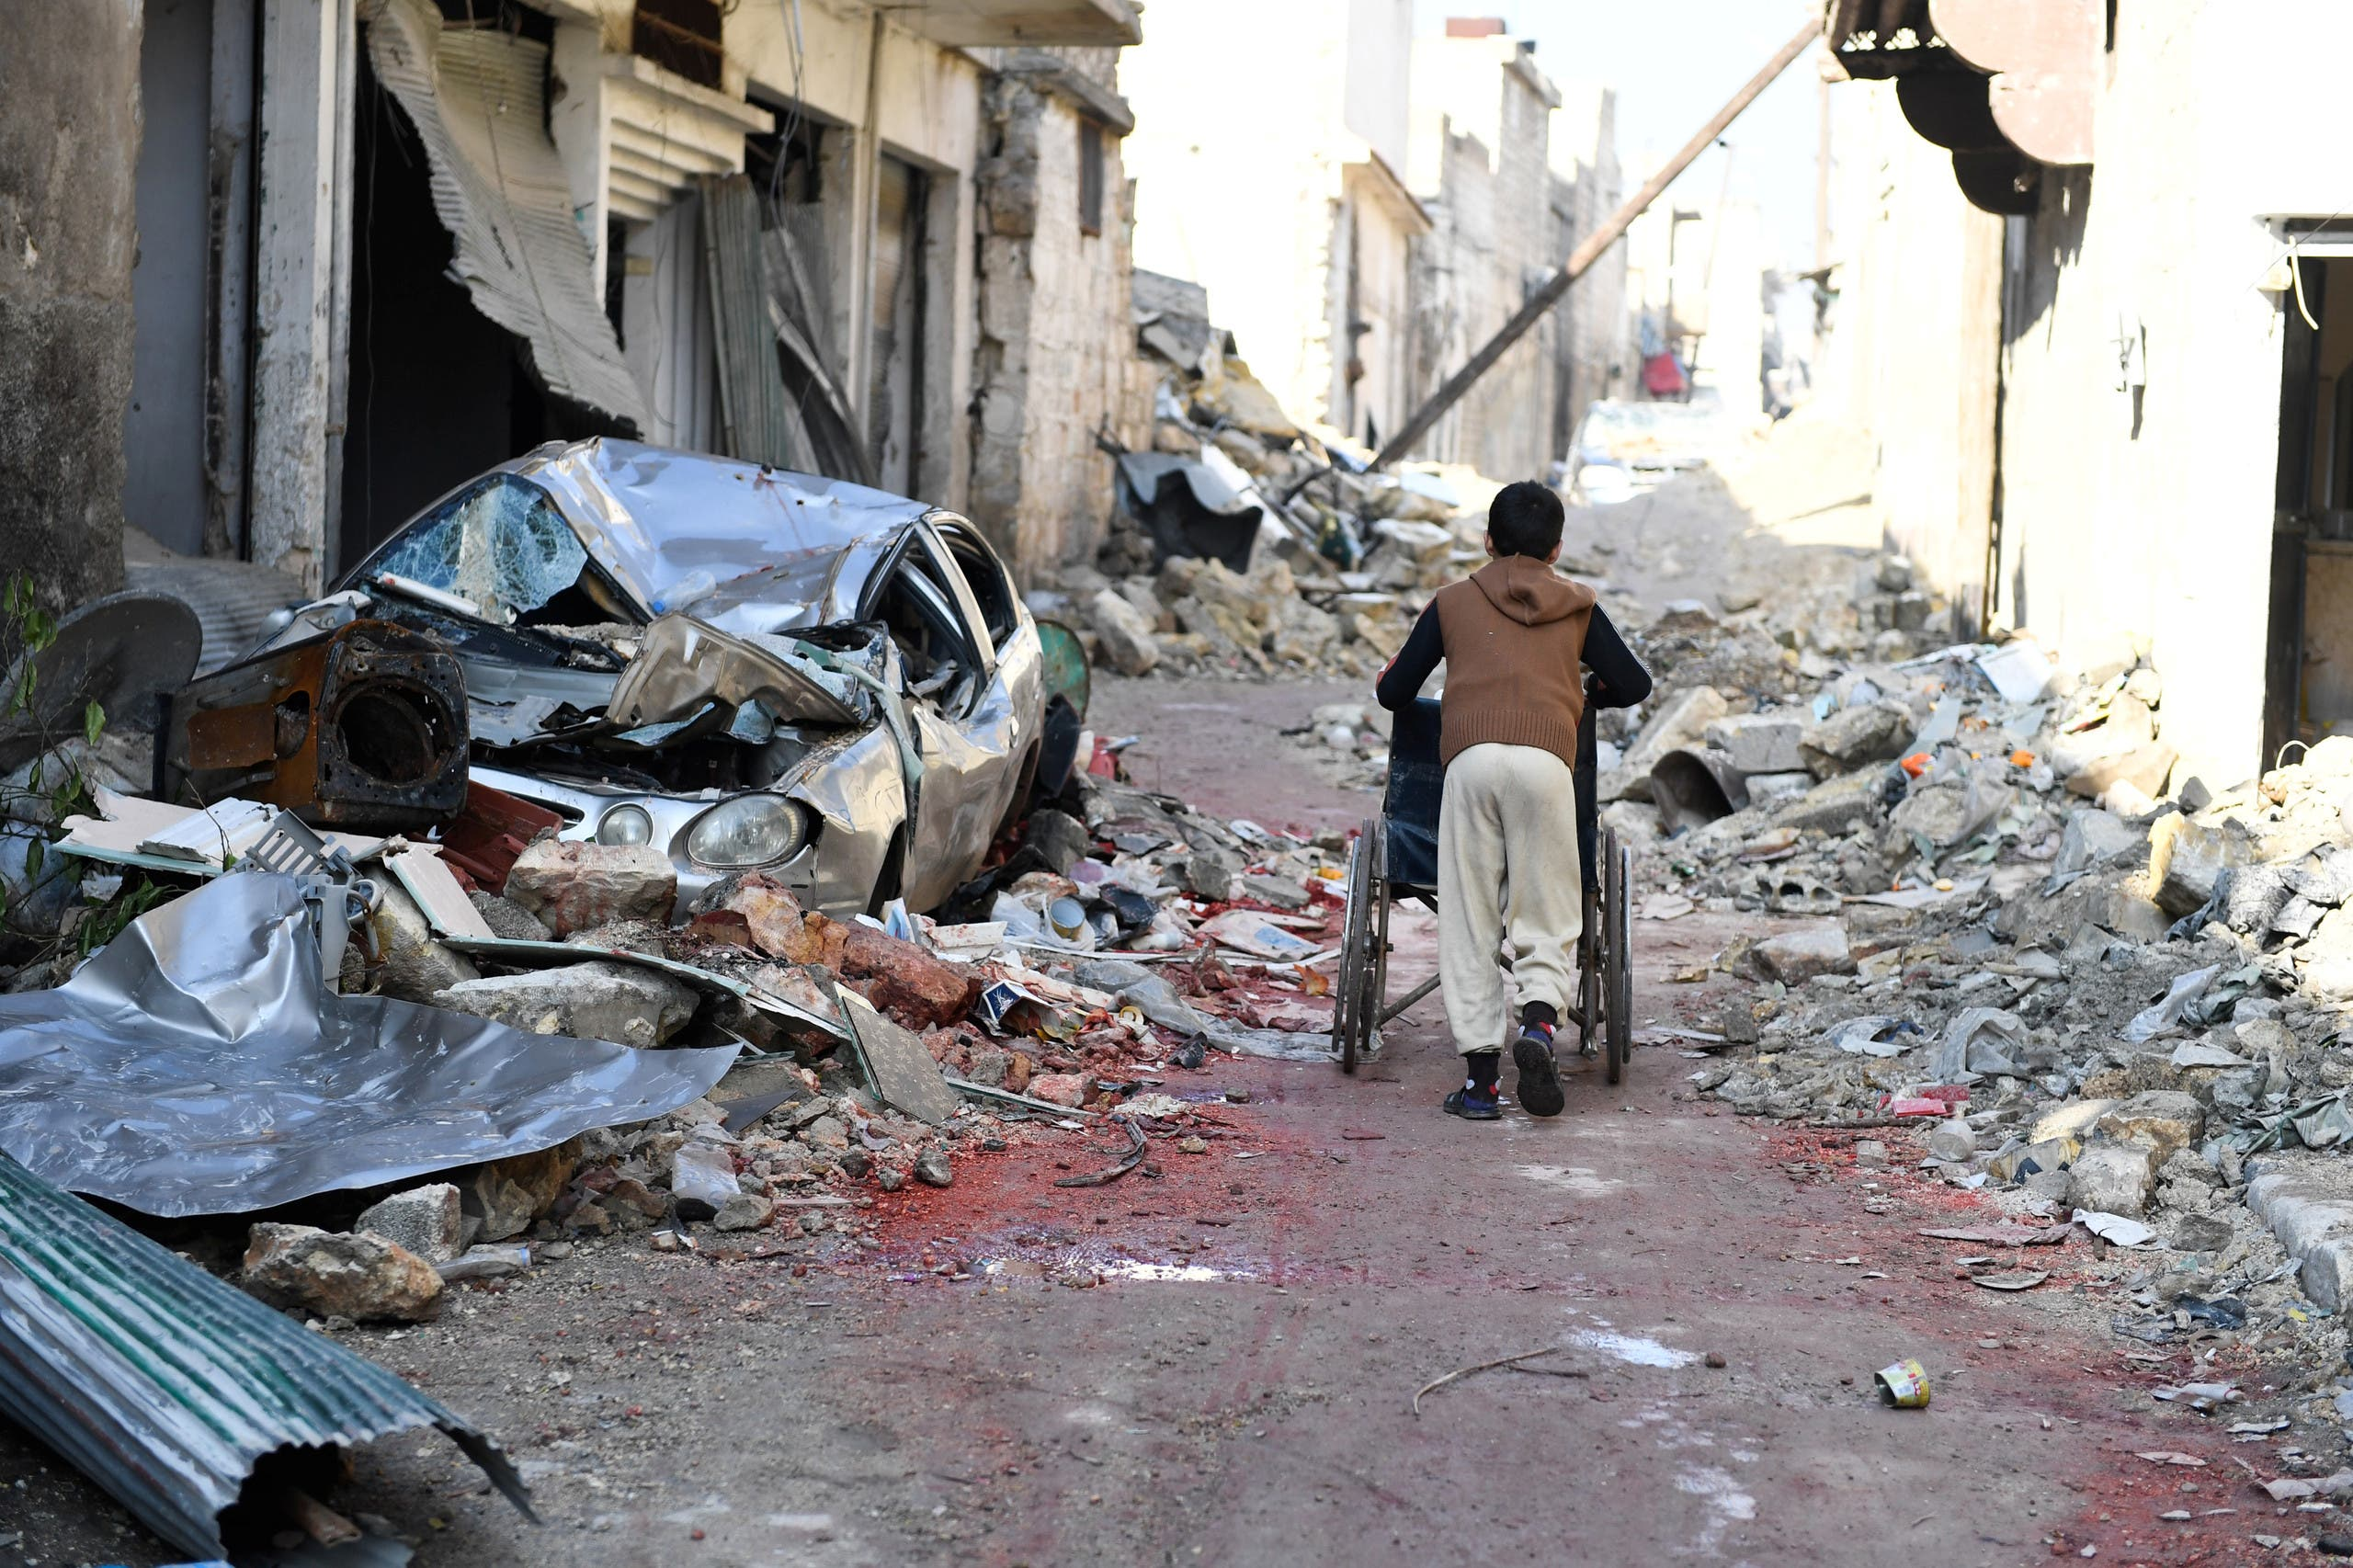 A boy pushes a wheelchair along a damaged street in the east Aleppo neighborhood of al-Mashatiyeh, Syria, in this handout picture provided by UNHCR on January 4, 2017. Bassam Diab/UNHCR/Handout via REUTERS ATTENTION EDITORS - THIS PICTURE WAS PROVIDED BY A THIRD PARTY. REUTERS IS UNABLE TO INDEPENDENTLY VERIFY THE AUTHENTICITY, CONTENT, LOCATION OR DATE OF THIS IMAGE. FOR EDITORIAL USE ONLY.